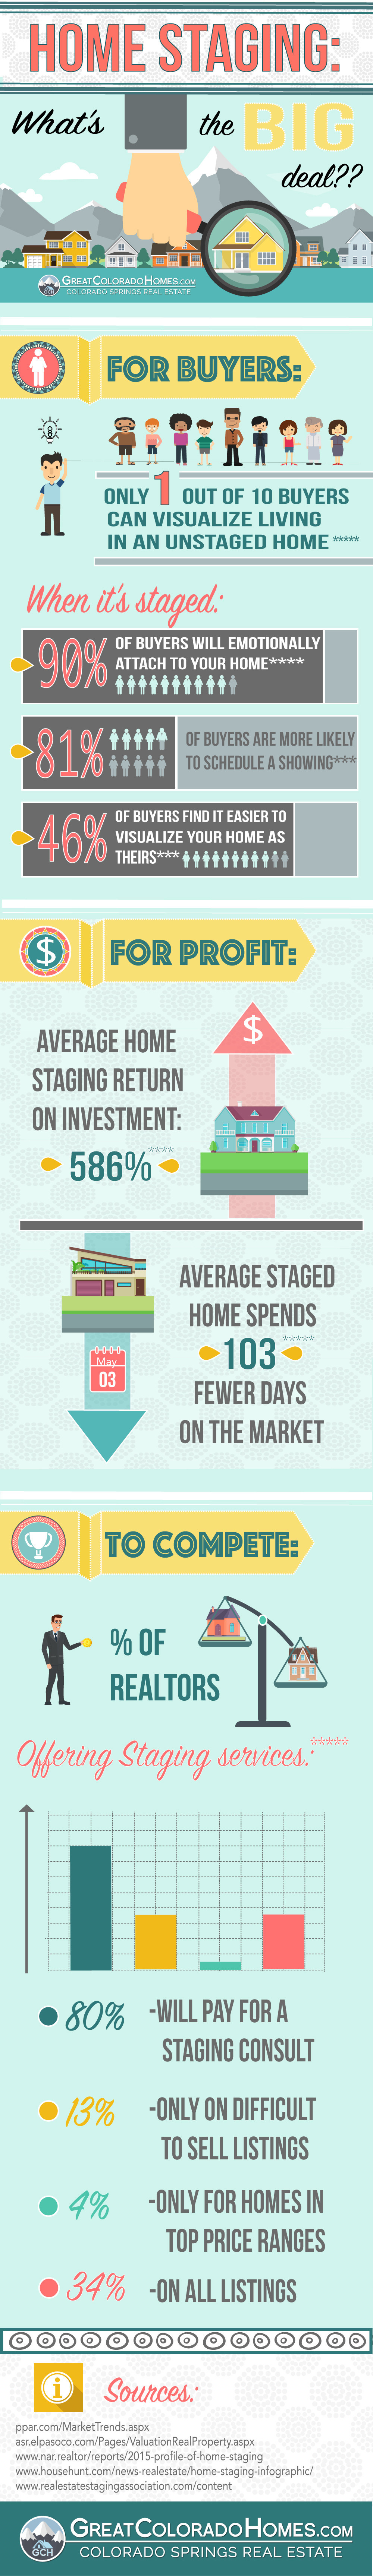 Home Staging Whats The Big Deal Infographic